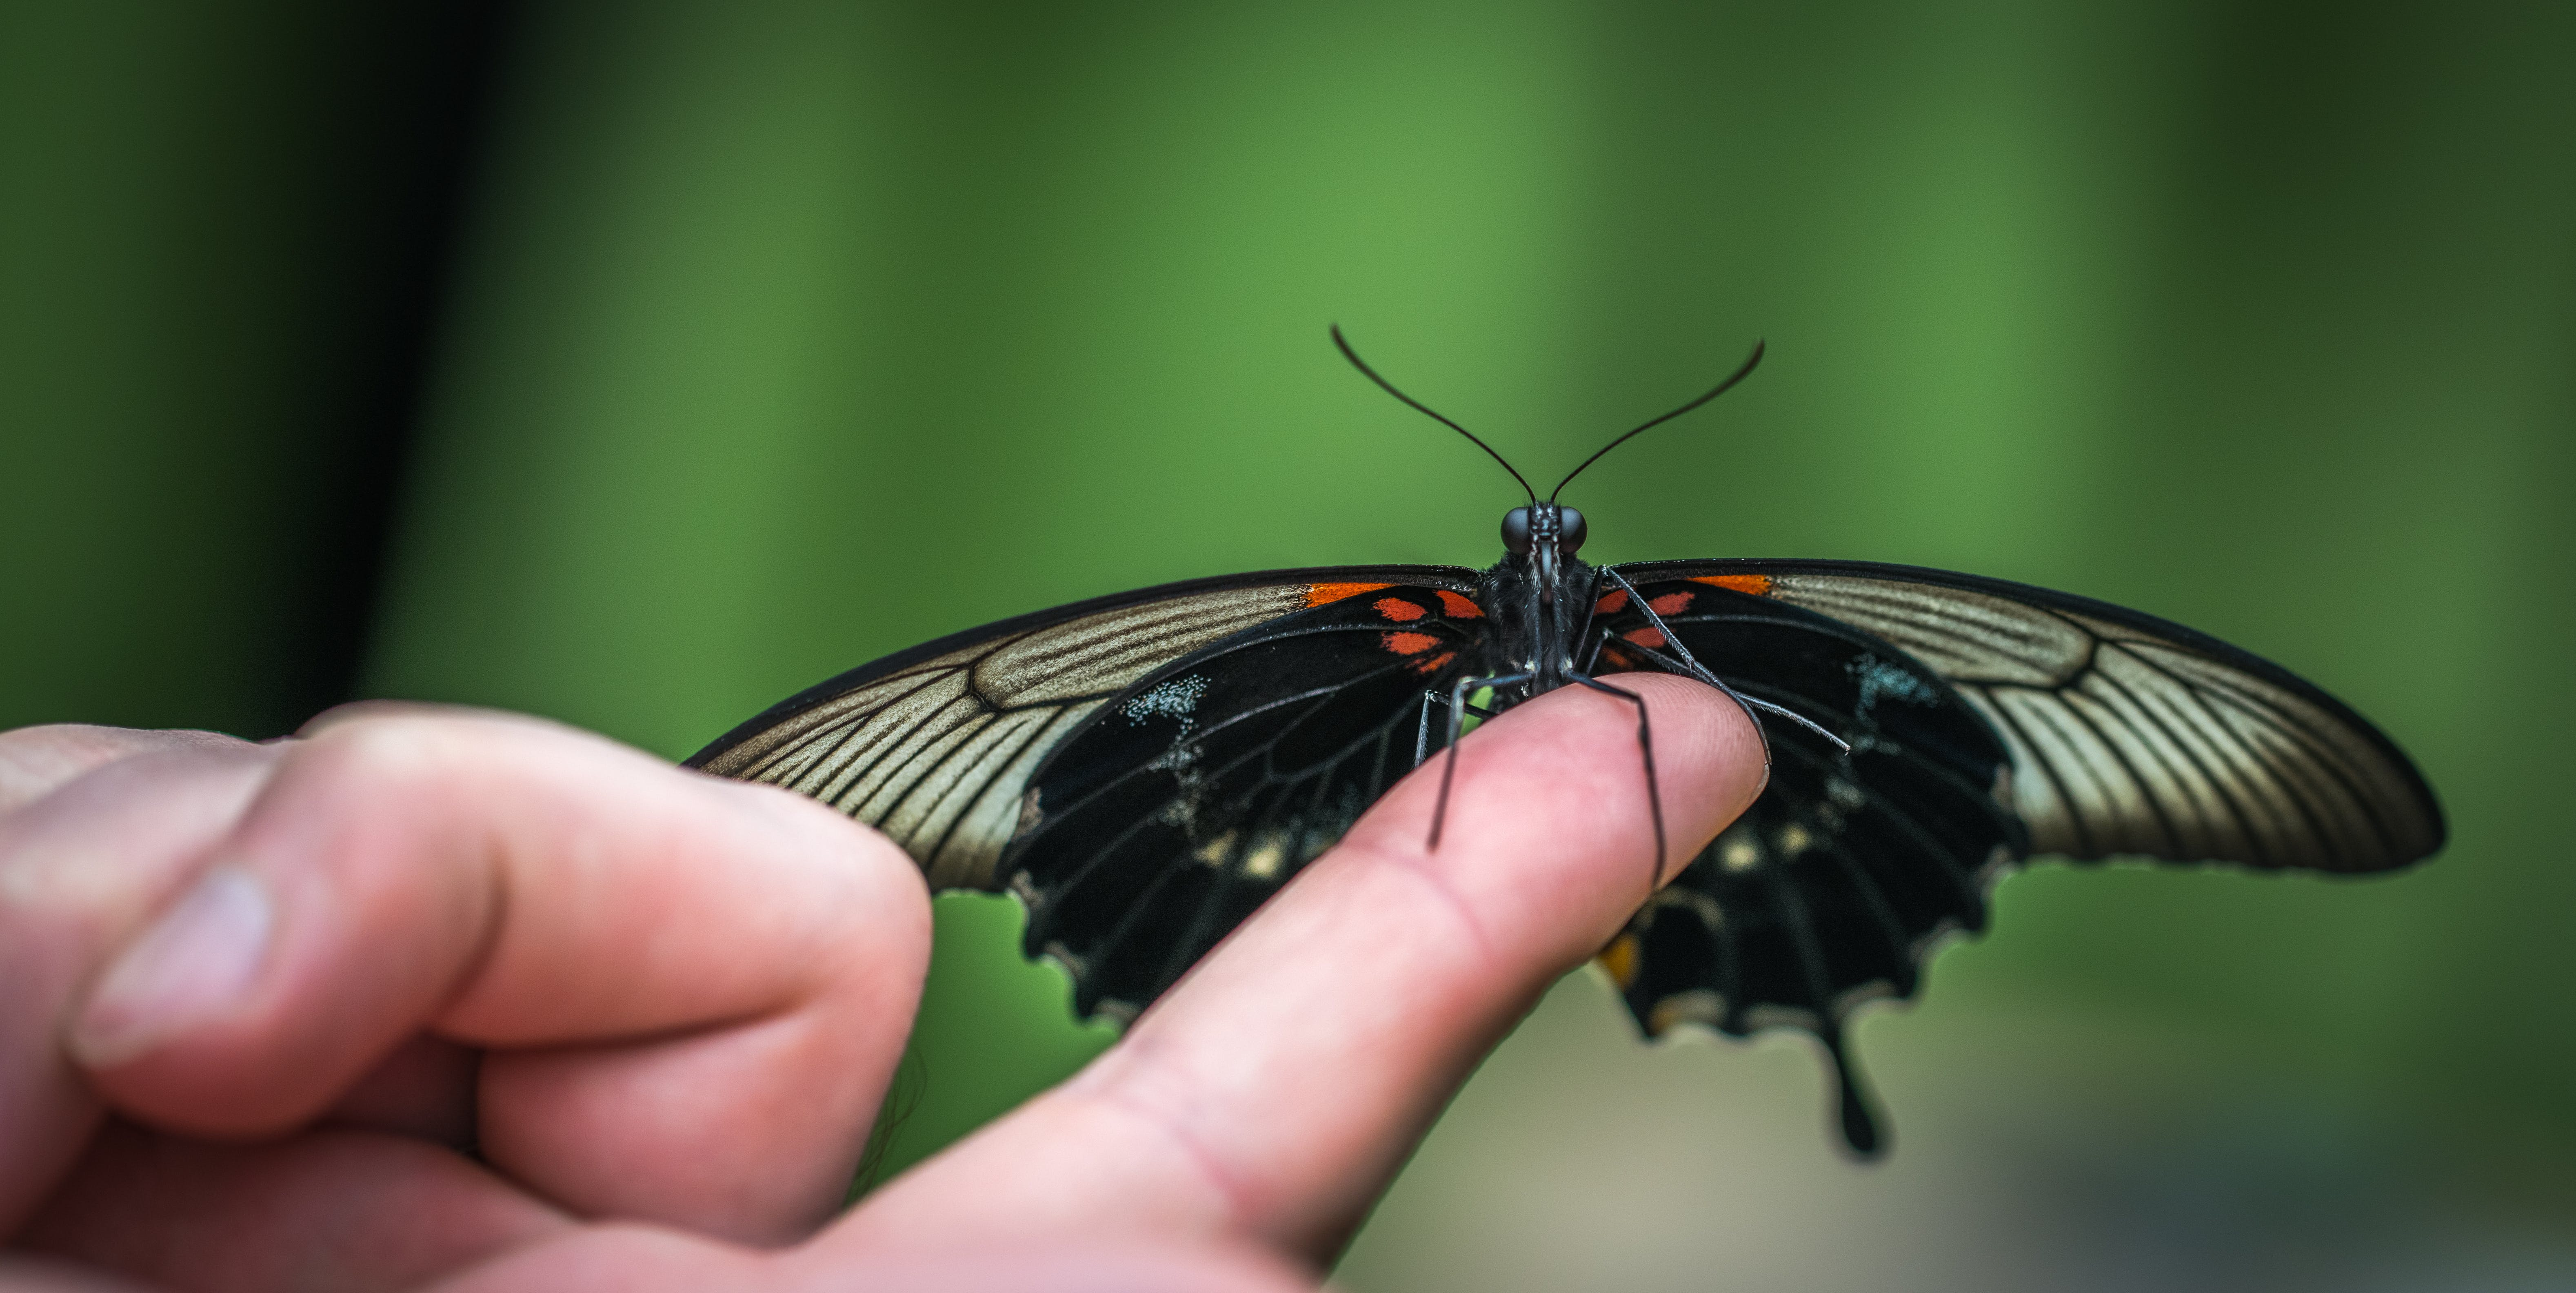 Shallow Focus Photograph of Black Butterfly on Person's Index Finger